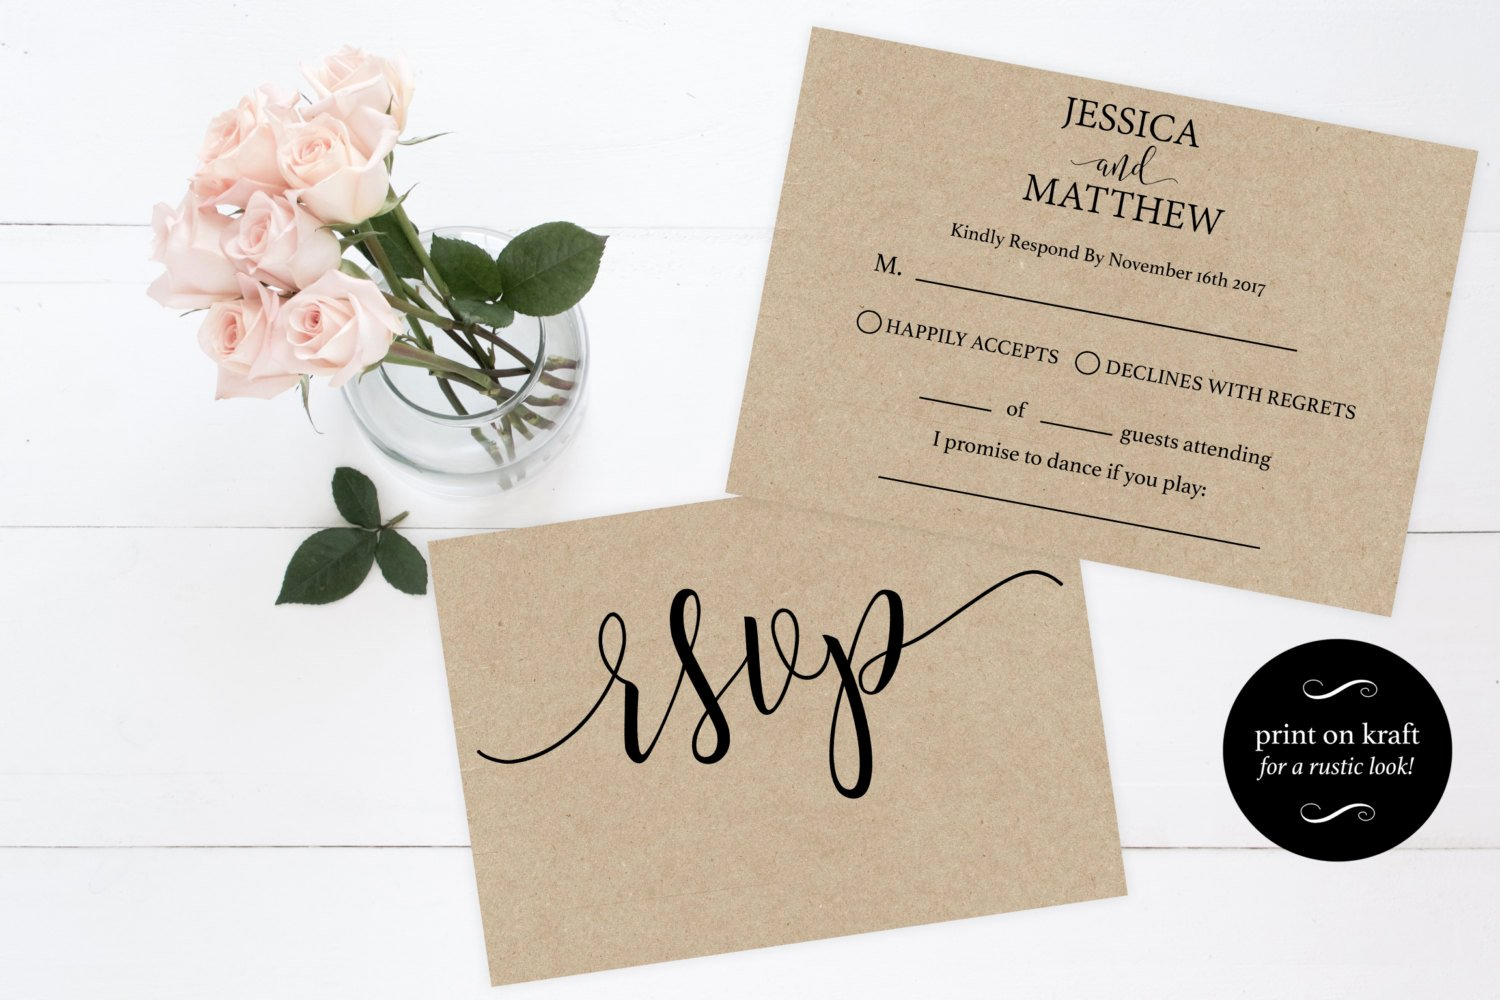 Wedding Rsvp Cards Template New Rsvp Postcards Templates Wedding Rsvp Cards Rsvp Online